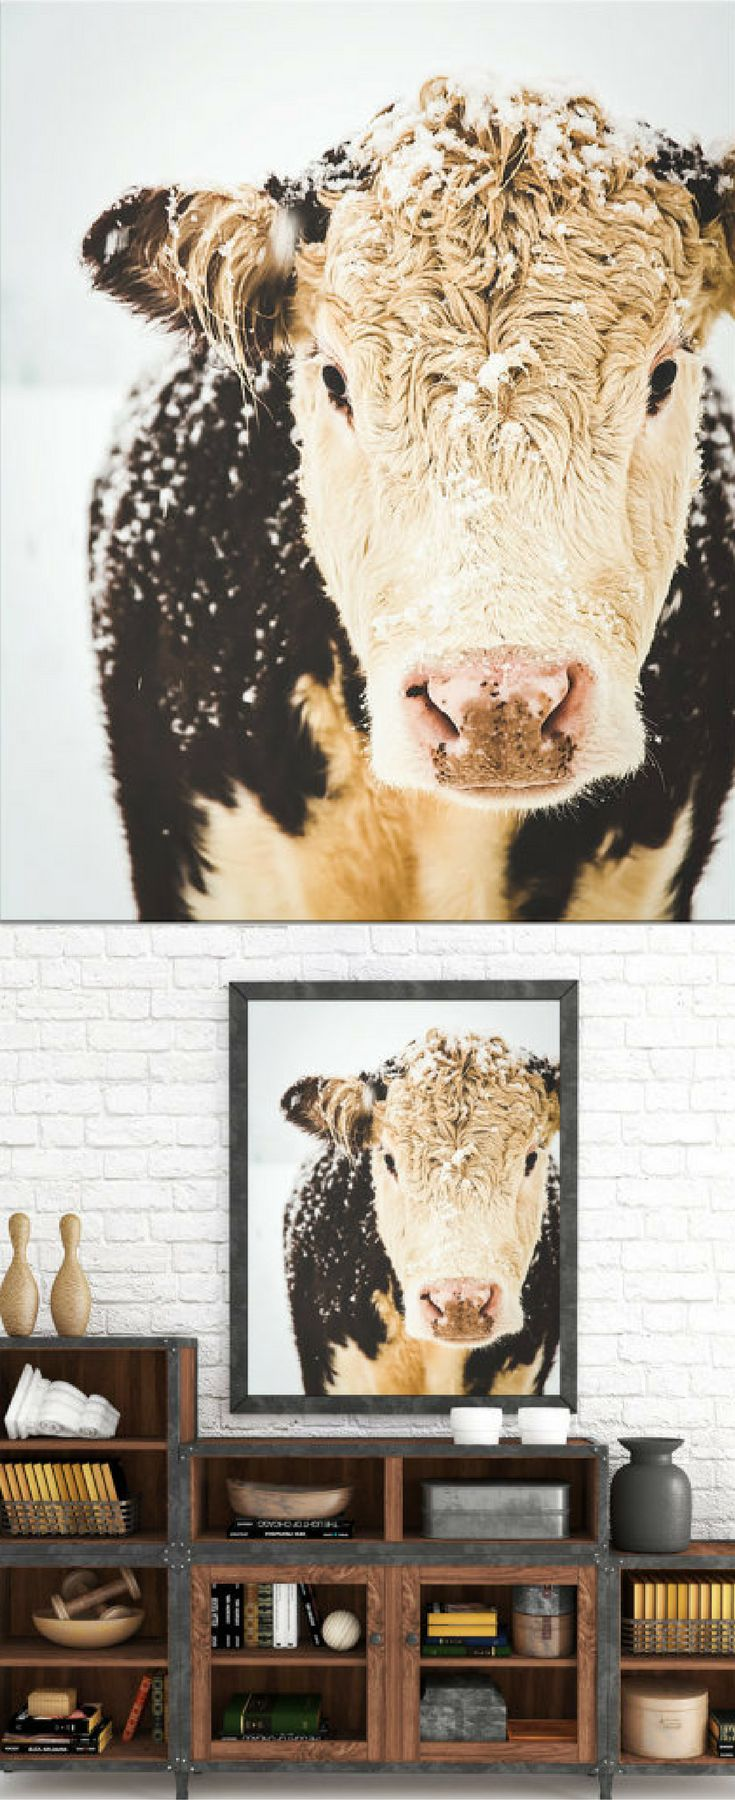 Cow Print, Cow Art, French Country Decor, Farmhouse Print, Winter Art, Snowy Cows, Farmhouse Rustic Decor, Large Wall Art, Fine Art Print, Christmas gift idea #ad